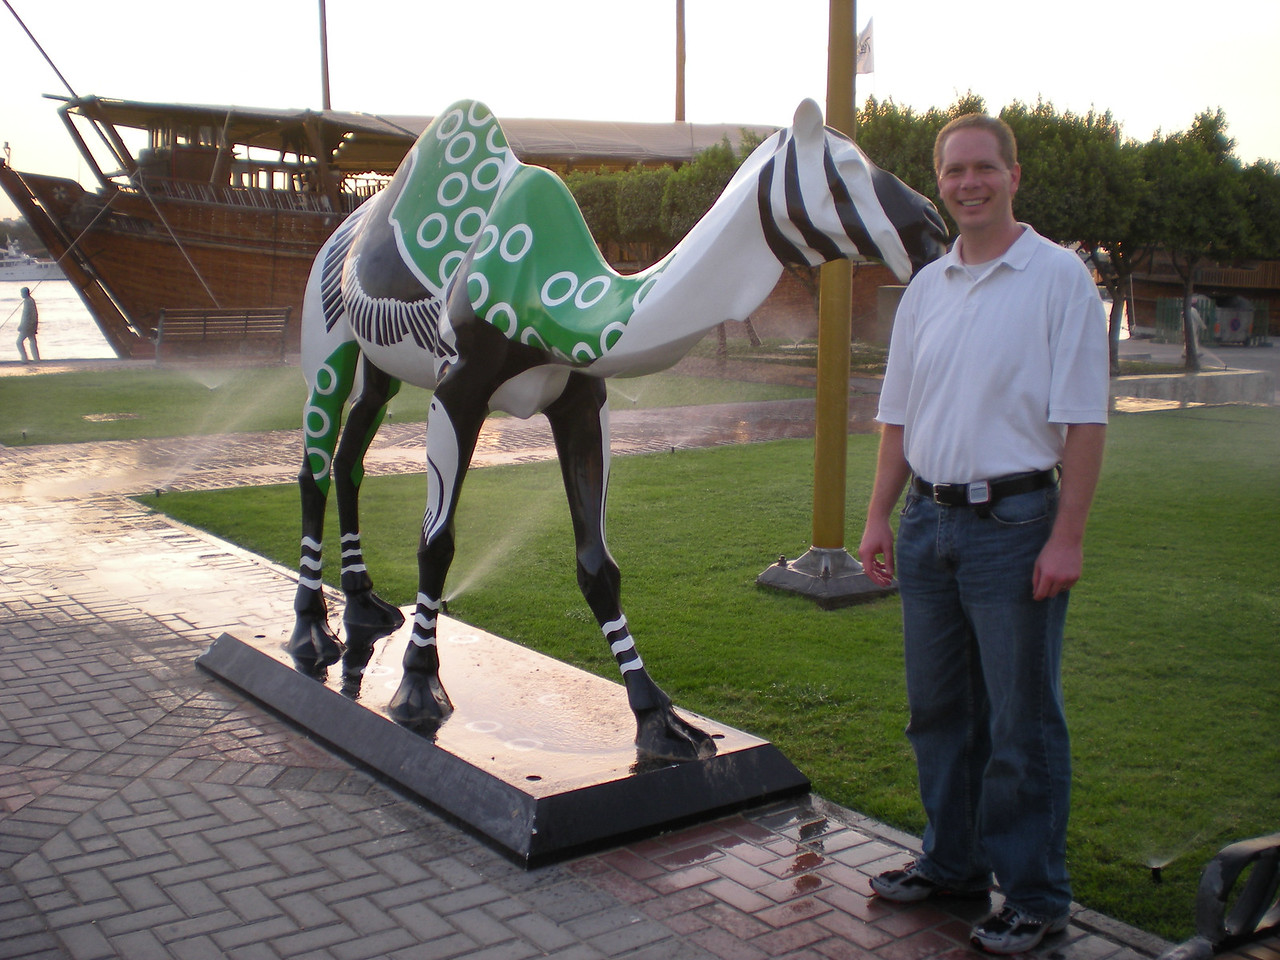 Scot and one of Dubai's camels